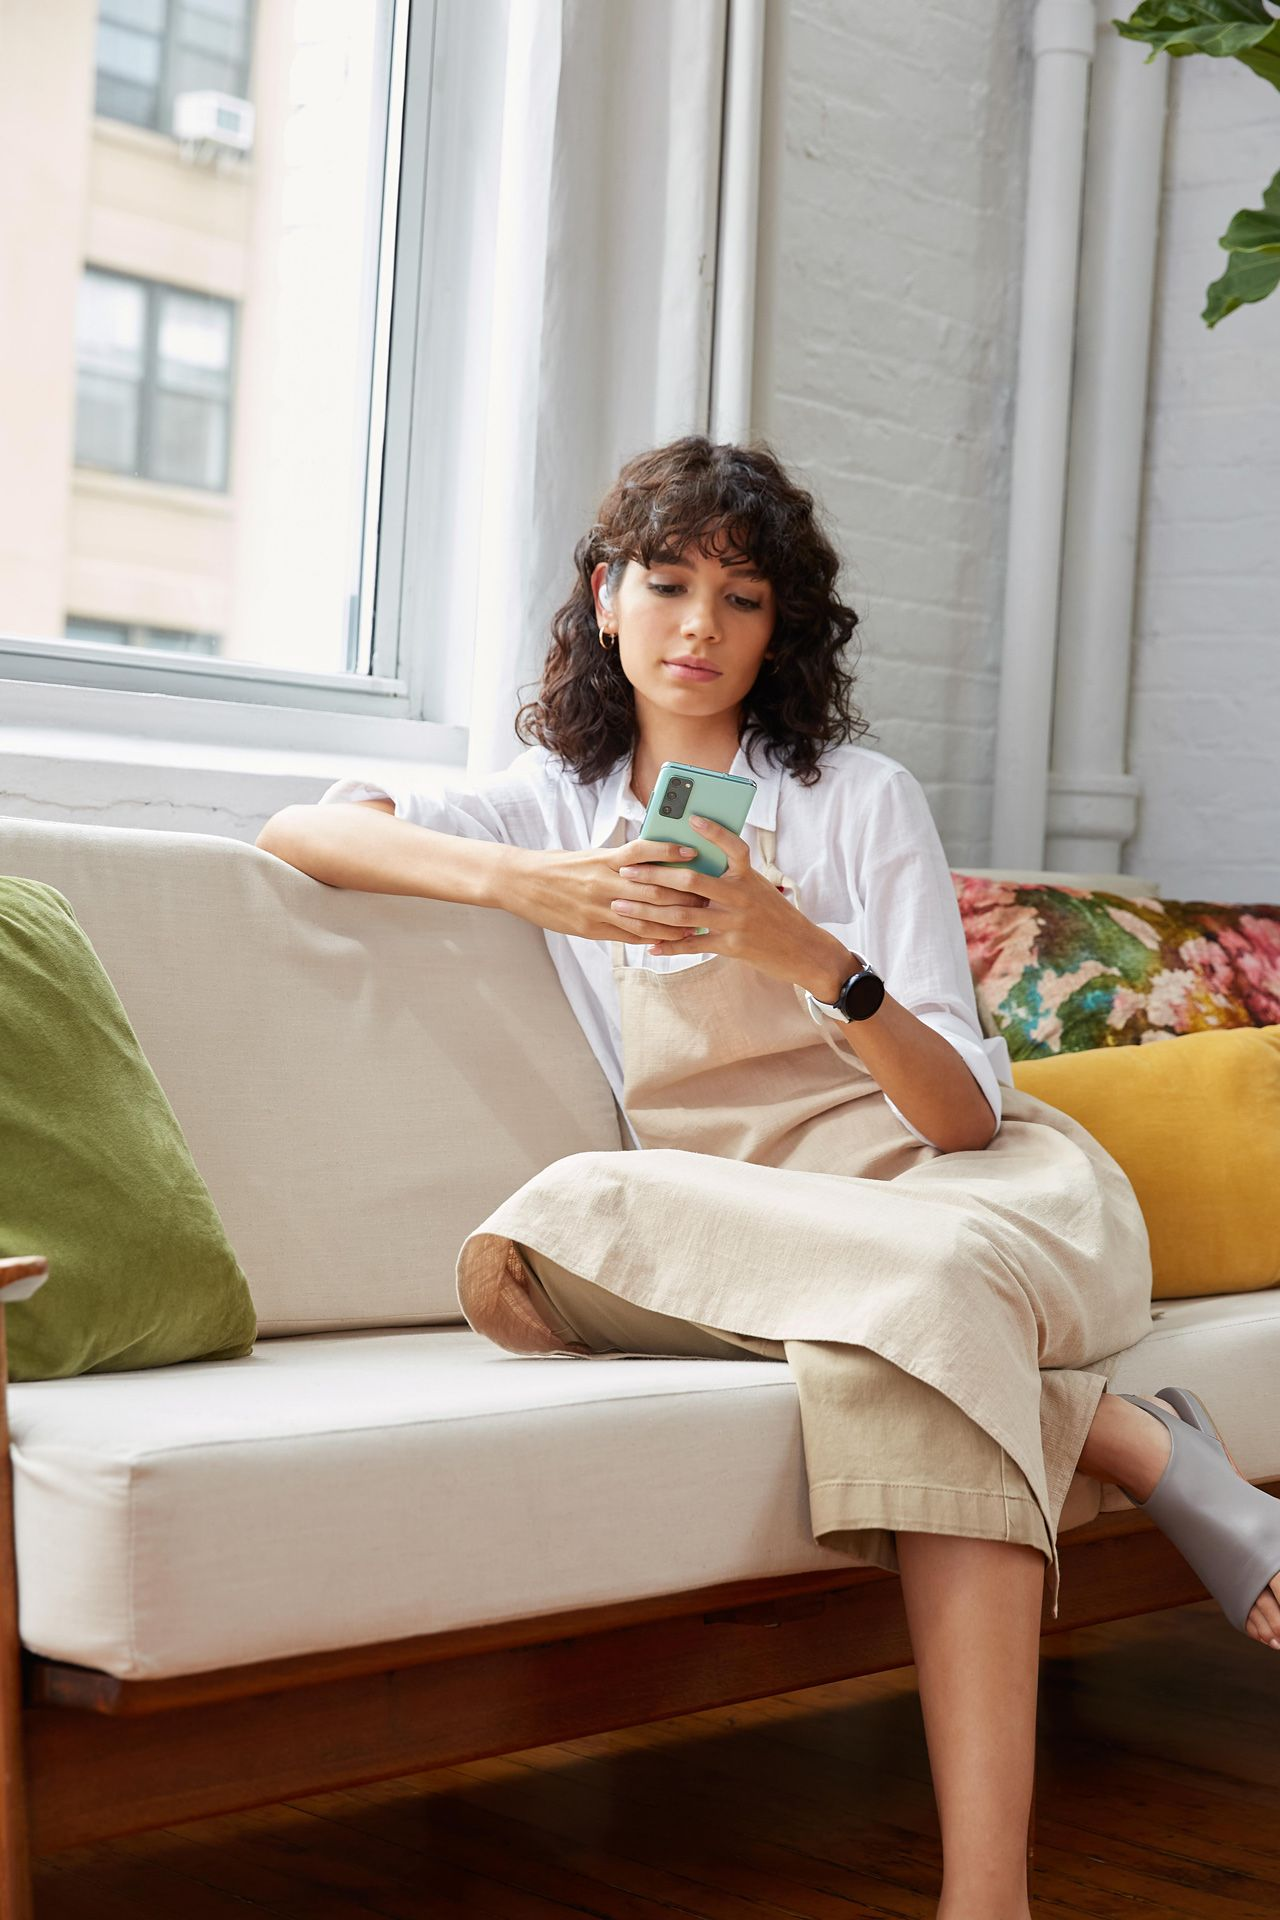 curly haired female model wearing beige apron and white shirt sitting on white couch typing on turquoise smartphone wearing wireless earpiece photographed by Oumayma B Tanfous for Samsung phone campaign